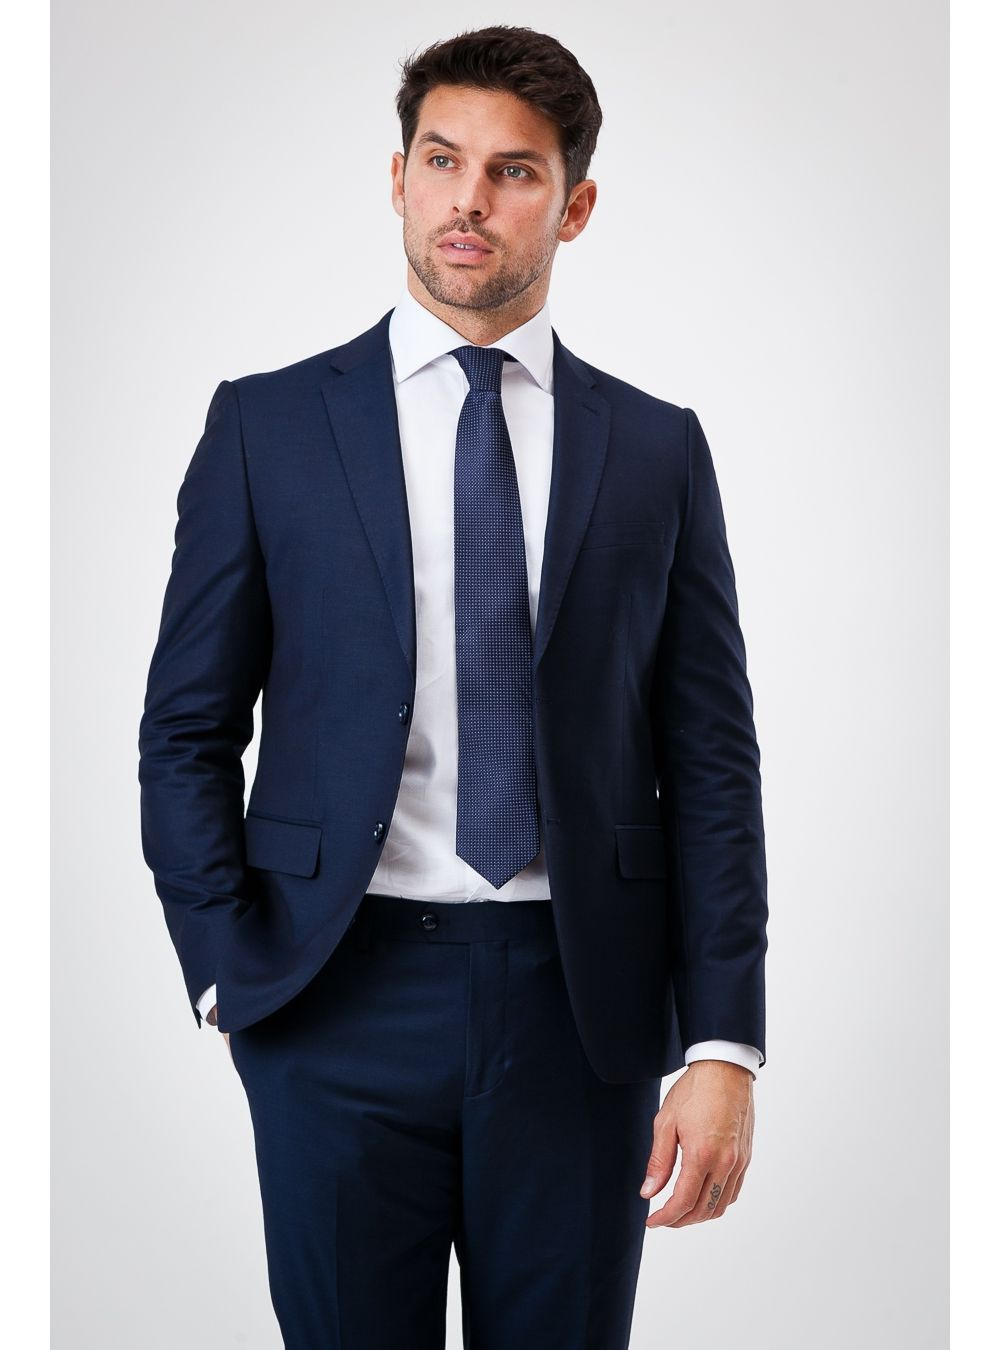 Navy Blue Spring Suit